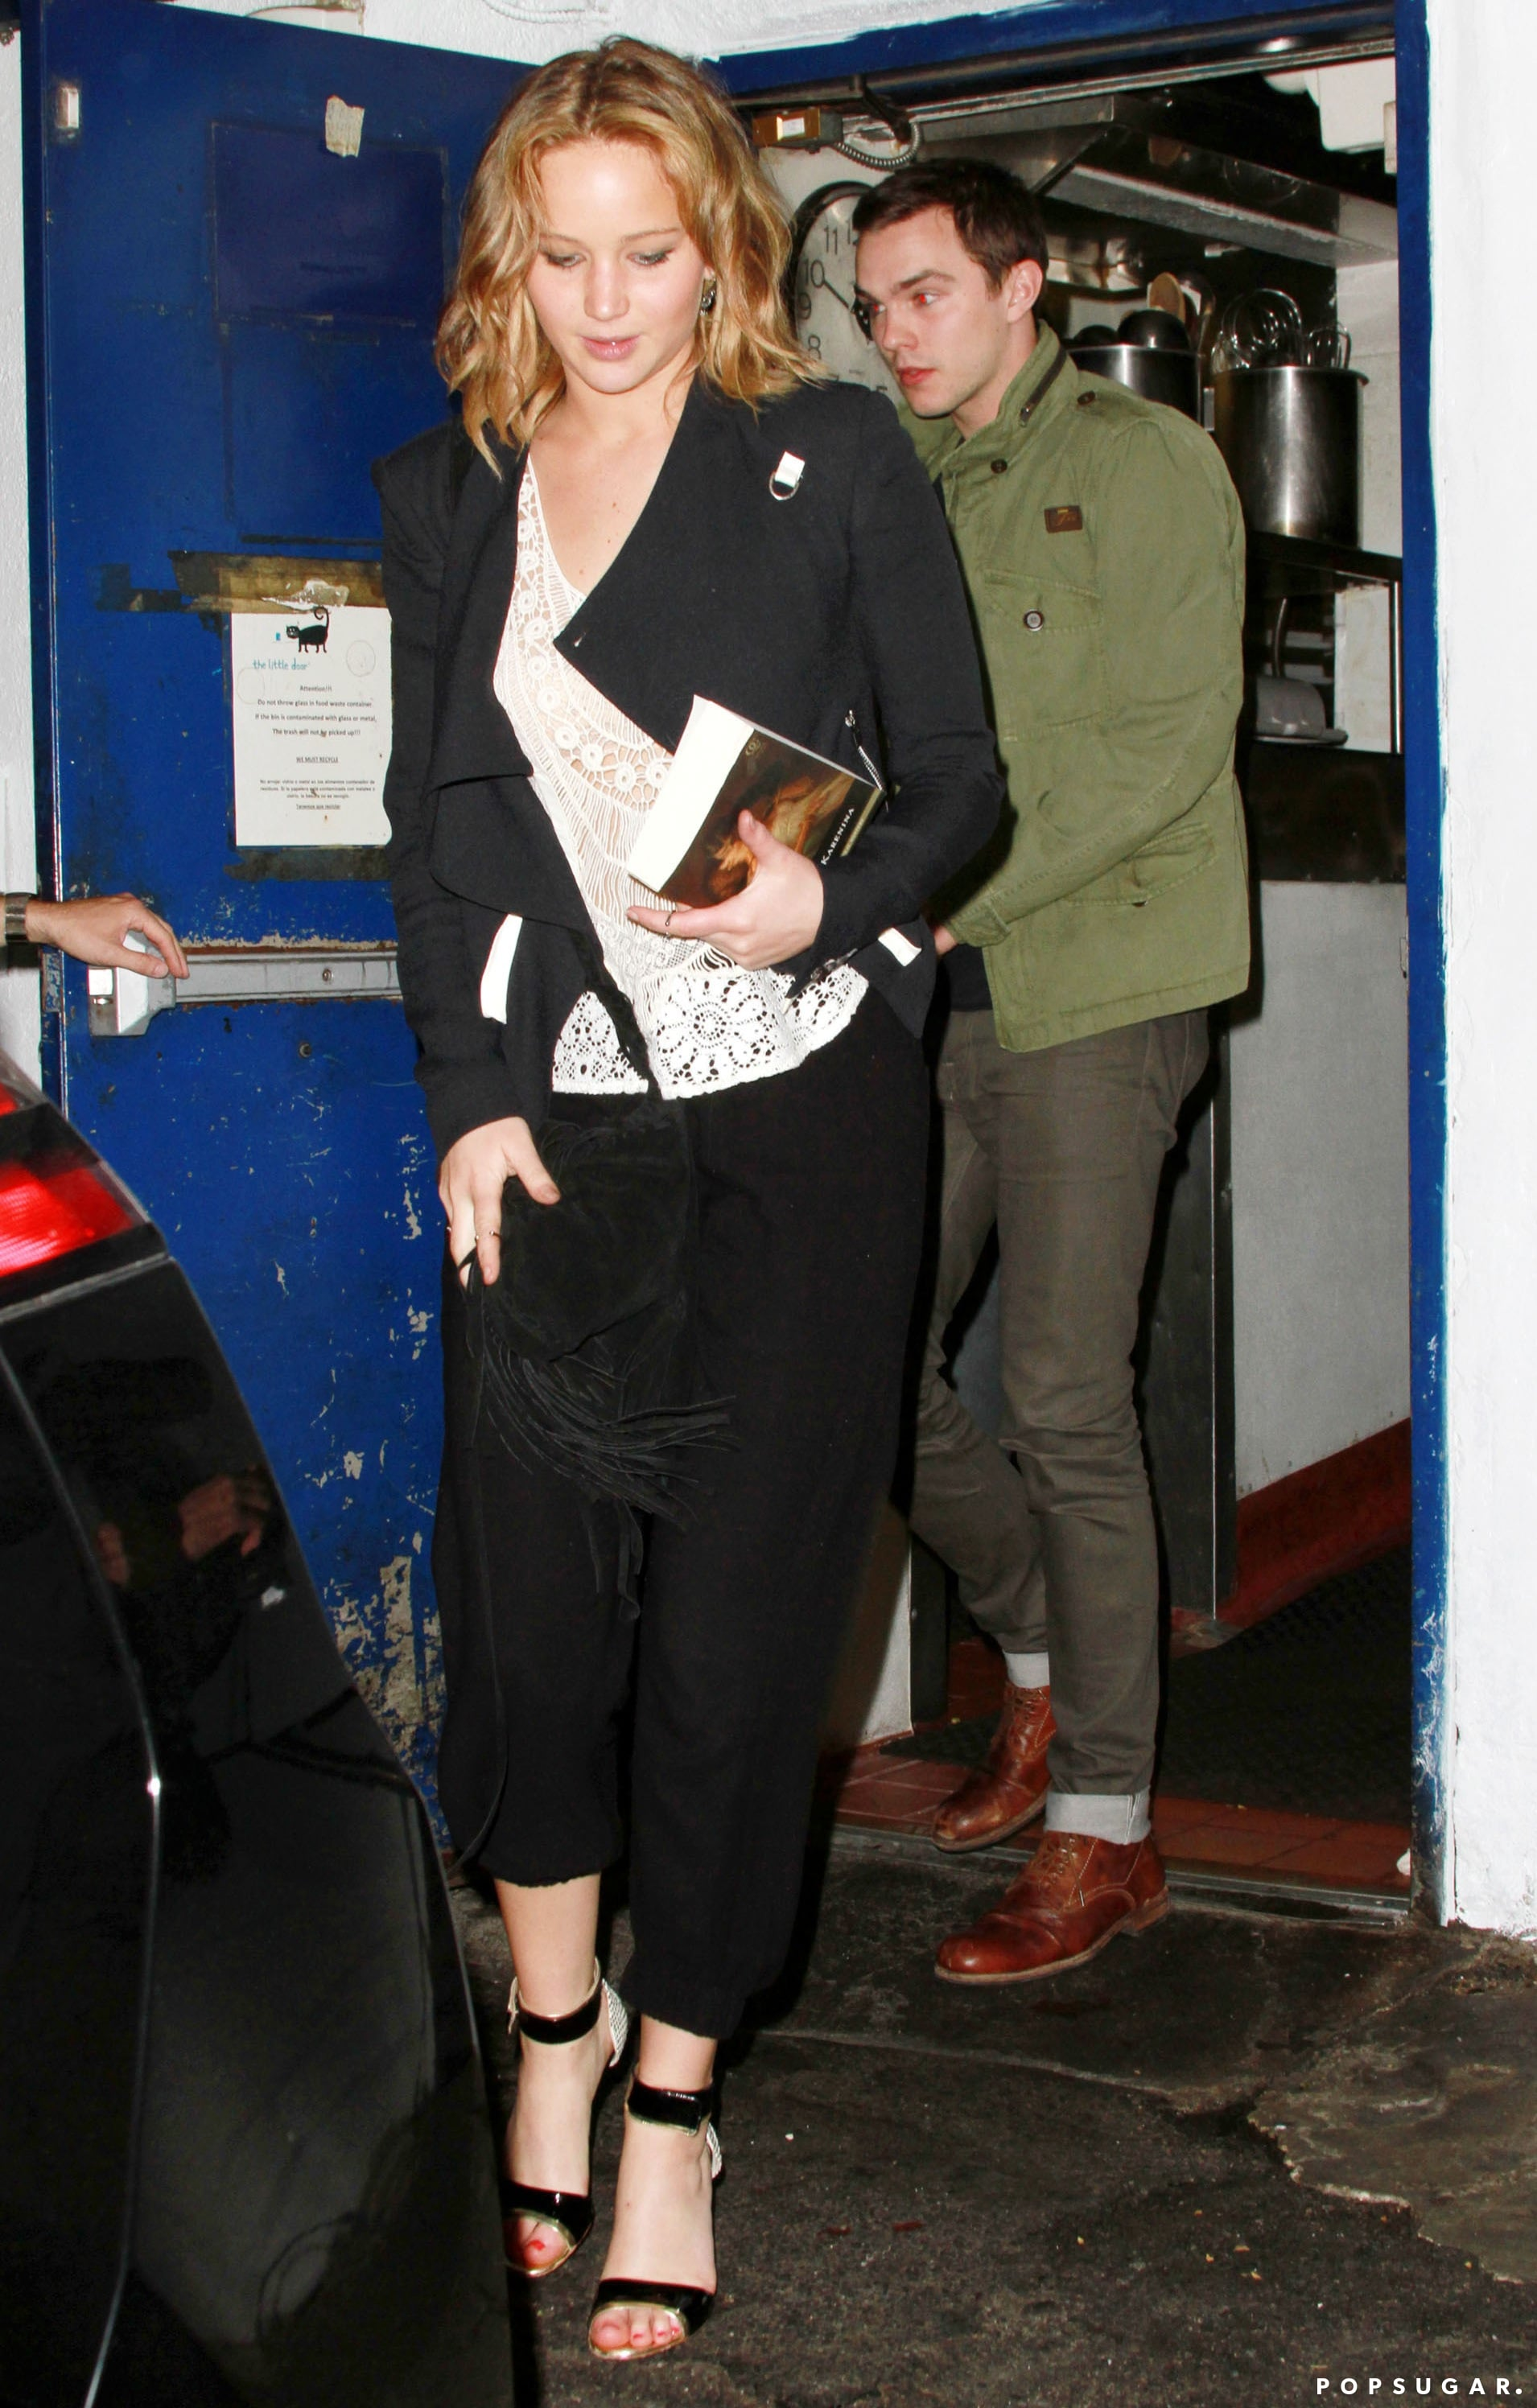 Jennifer Lawrence and Nicholas Hoult reunited for a dinner date in LA.